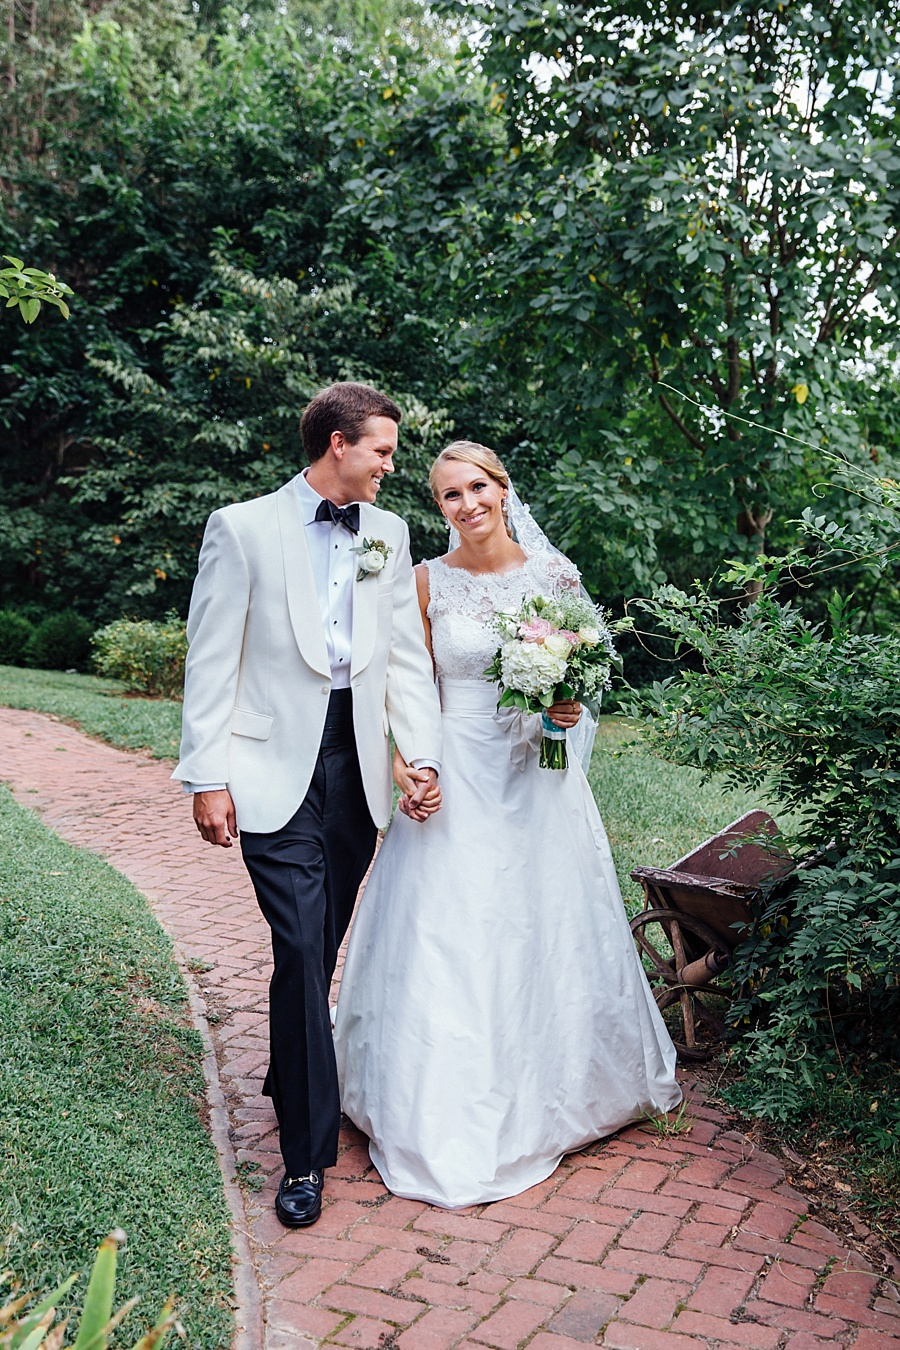 Tuckahoe-Plantation-Wedding-by-Agha-Photo-and-Glint-Events-00032